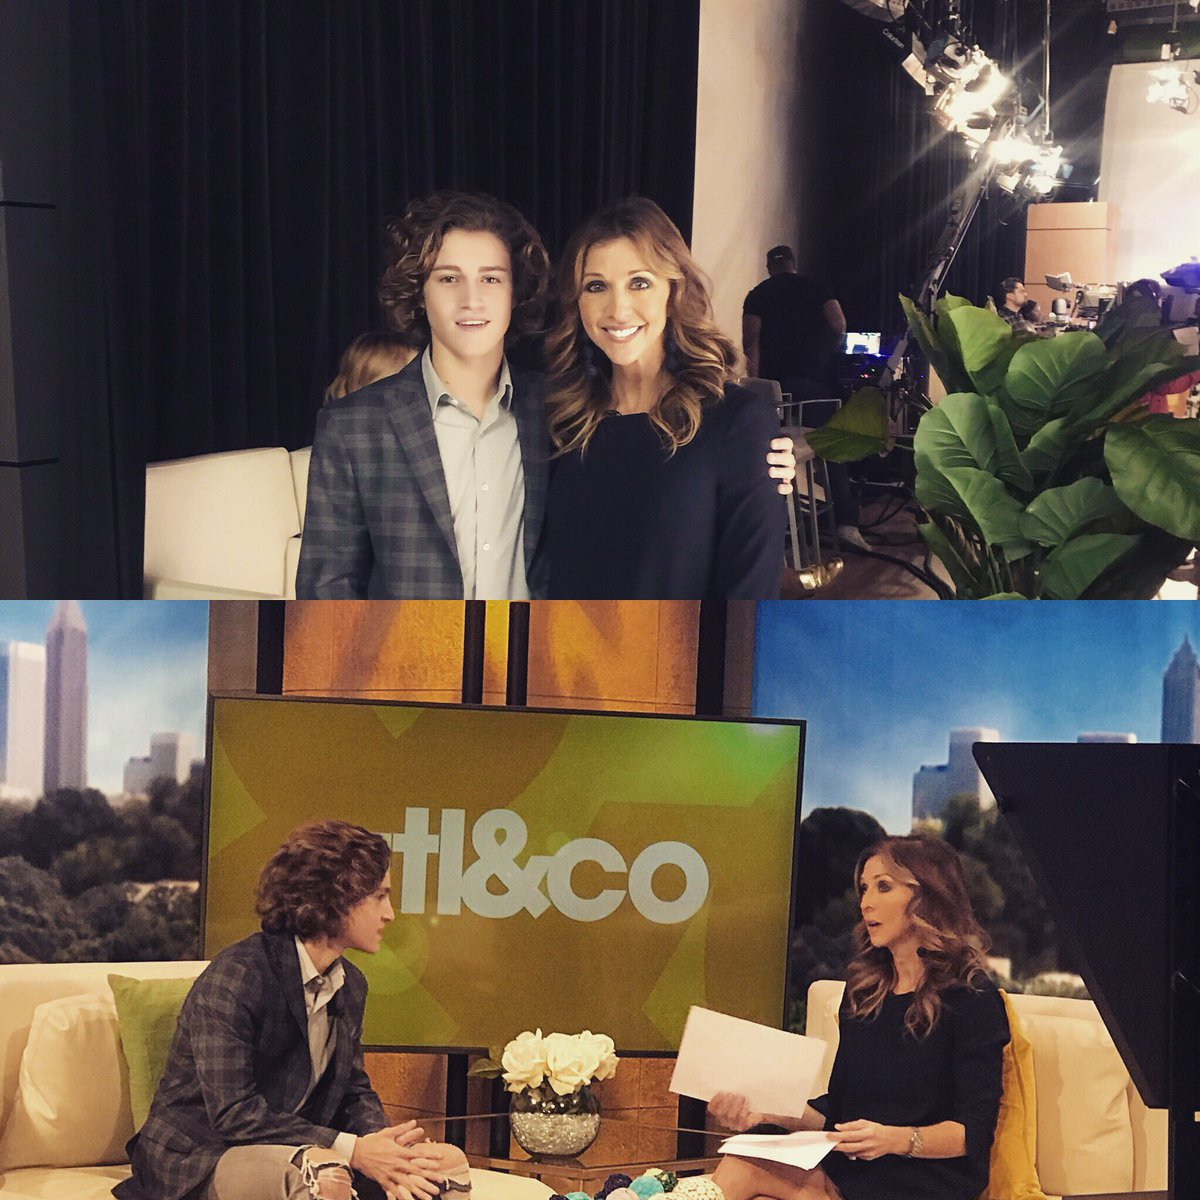 Thank you @atlandco @cdpullara Great talking with you about my role on @BerlinStation #season2 #kirschcub<br>http://pic.twitter.com/kdkwe4w7n9 &ndash; à Atlanta &amp; Company Studio